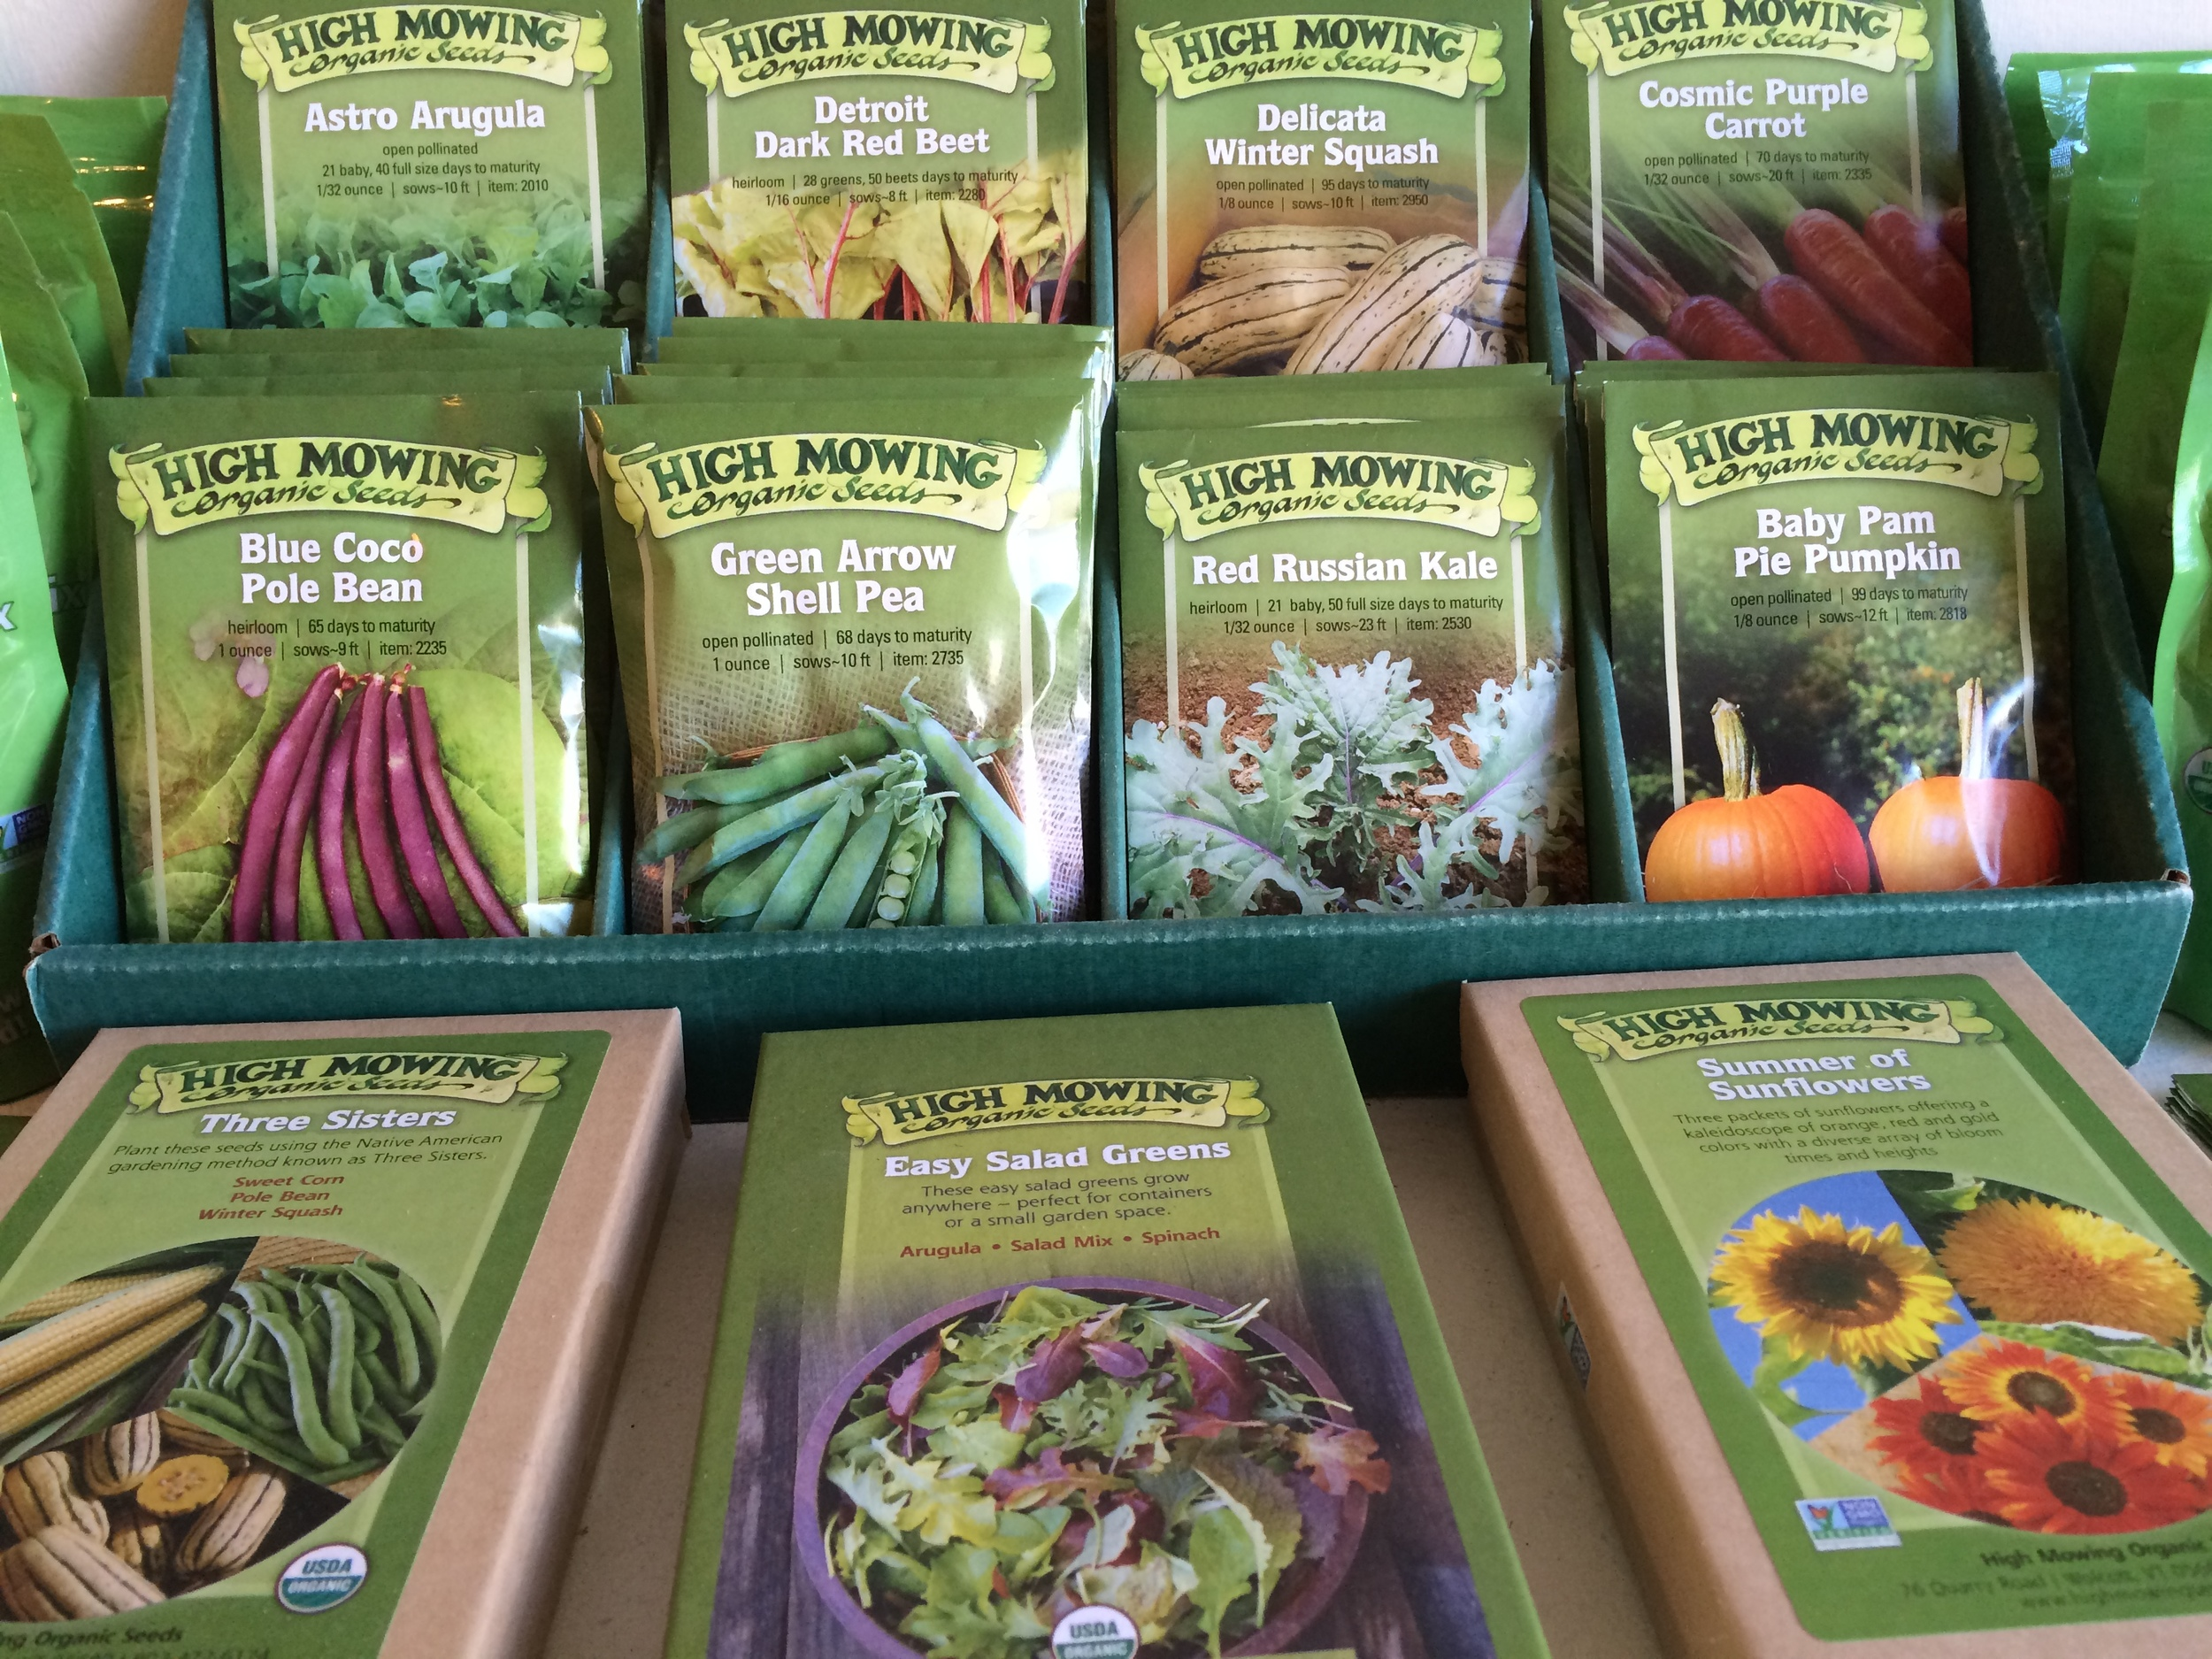 Beautiful High Mowing Seeds for sale at Backyard Growers. Spend $50 on seeds, merchandise and workshops now through June 1 and enter a raffle!